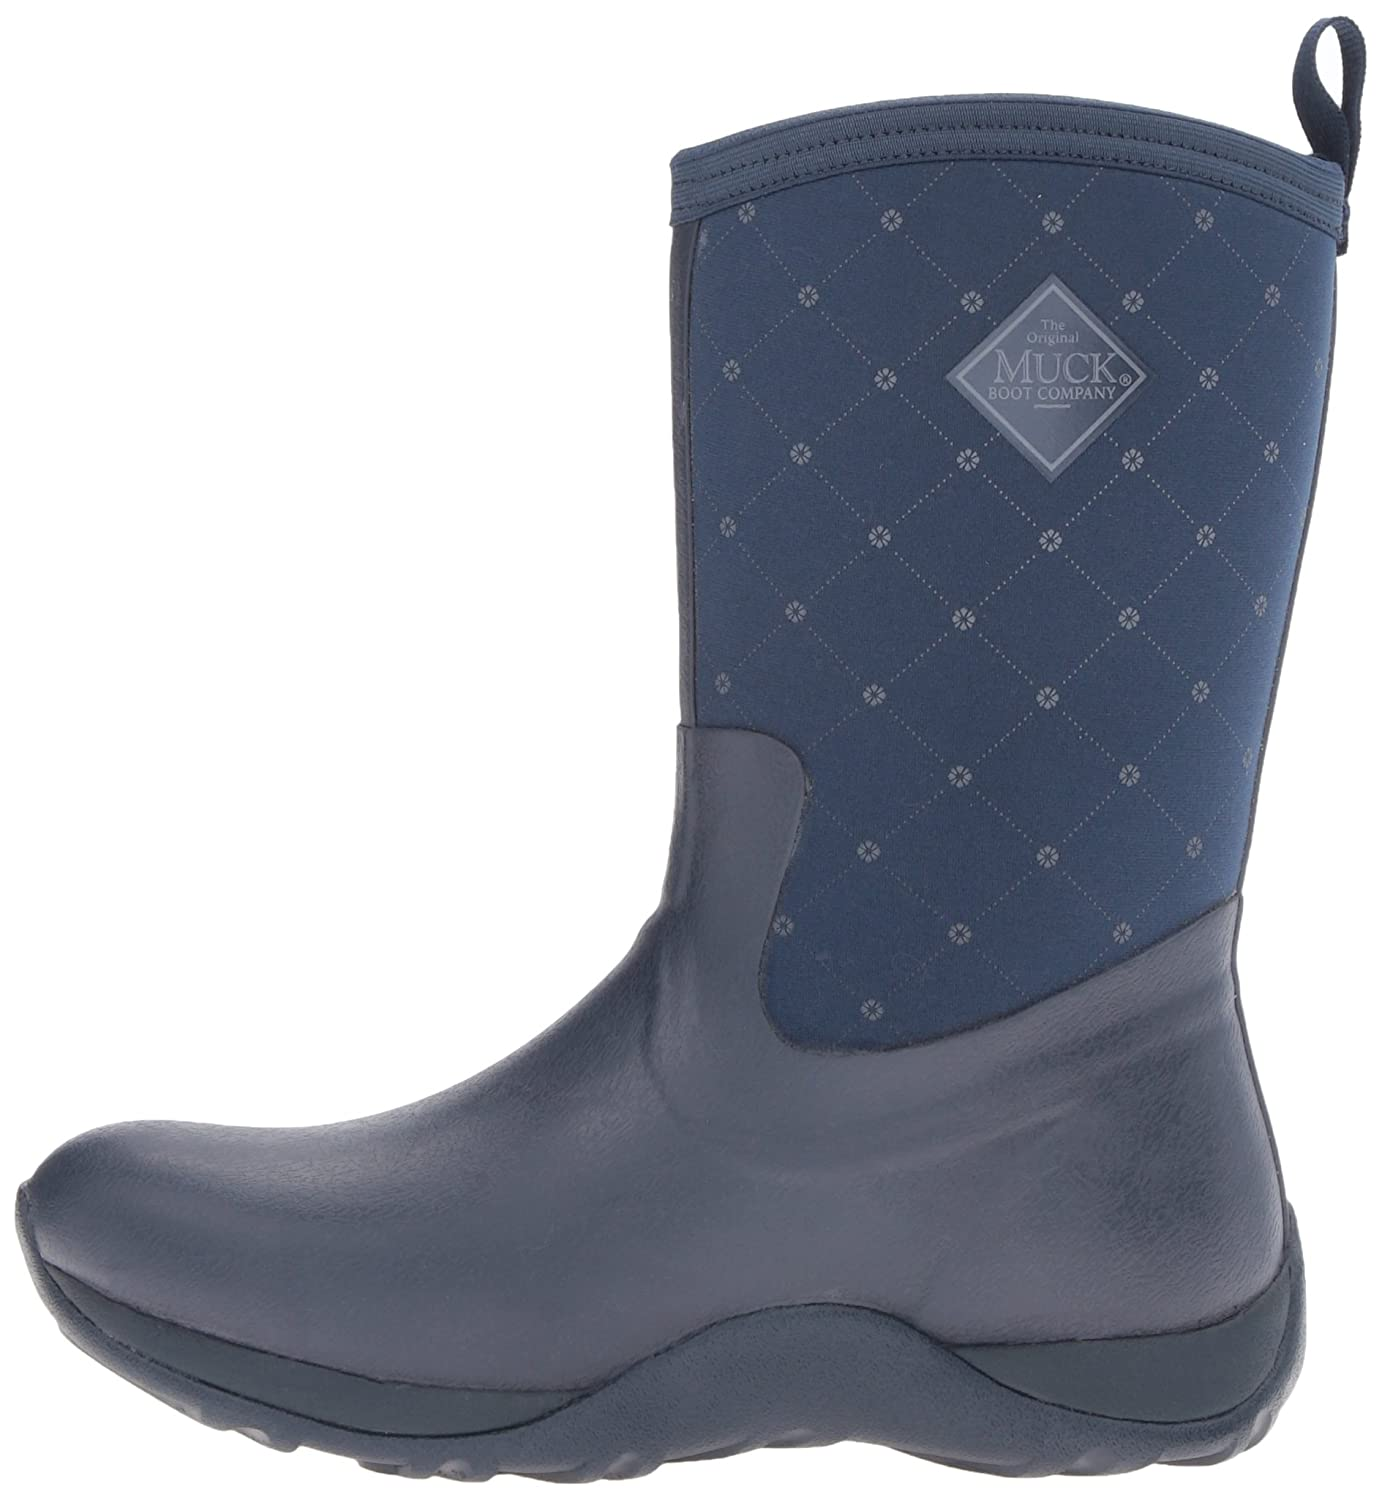 Muck Boot Snow Women's Arctic Weekend Mid Snow Boot B01J6MBHLI 11 B(M) US|Navy Quilt bf9c2b